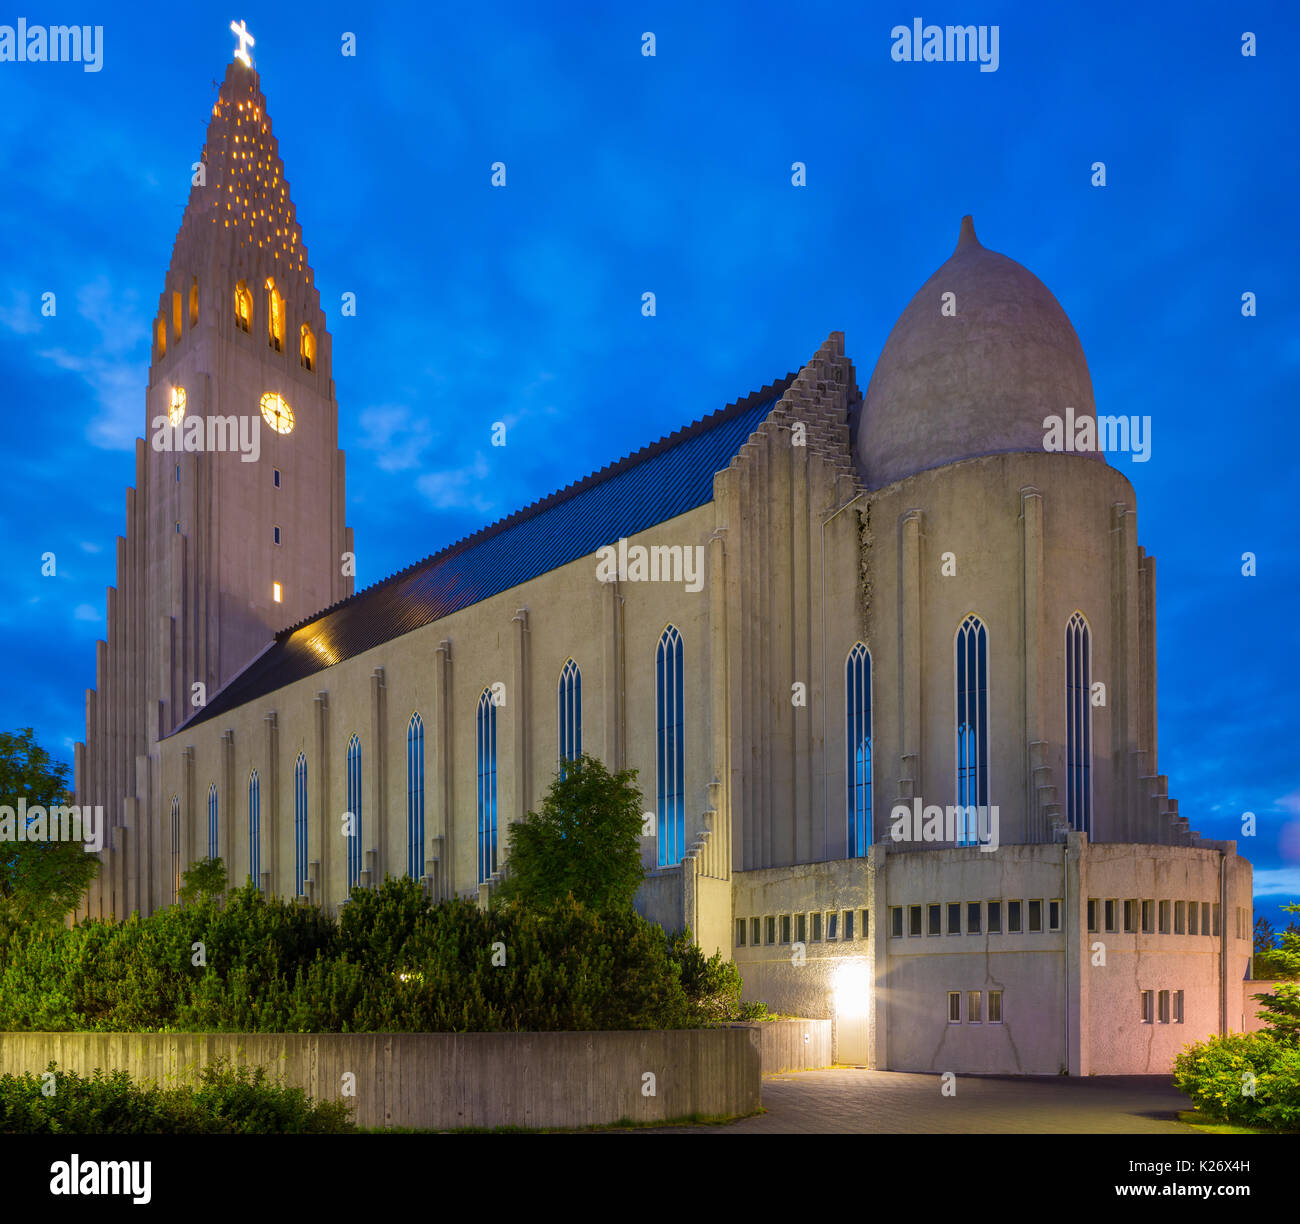 Hallgrímskirkja is a Lutheran (Church of Iceland) parish church in Reykjavík, Iceland. At 74.5 metres (244 ft) high, it is the largest church in Icela - Stock Image